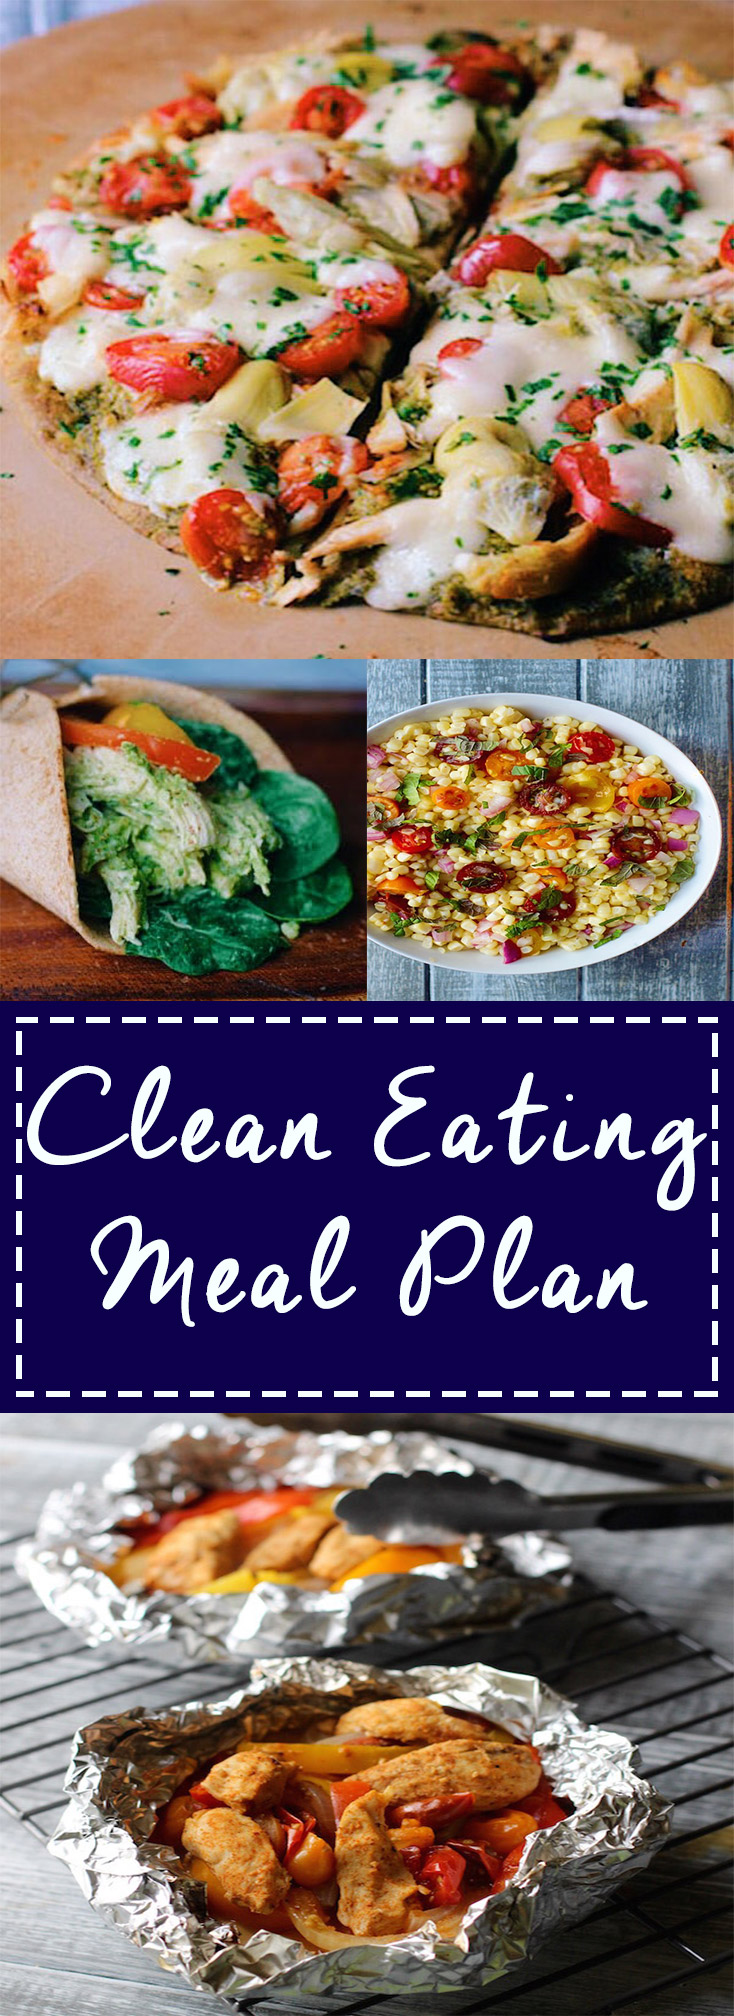 7 day Clean Eating Meal Plan complete with recipes and grocery list!